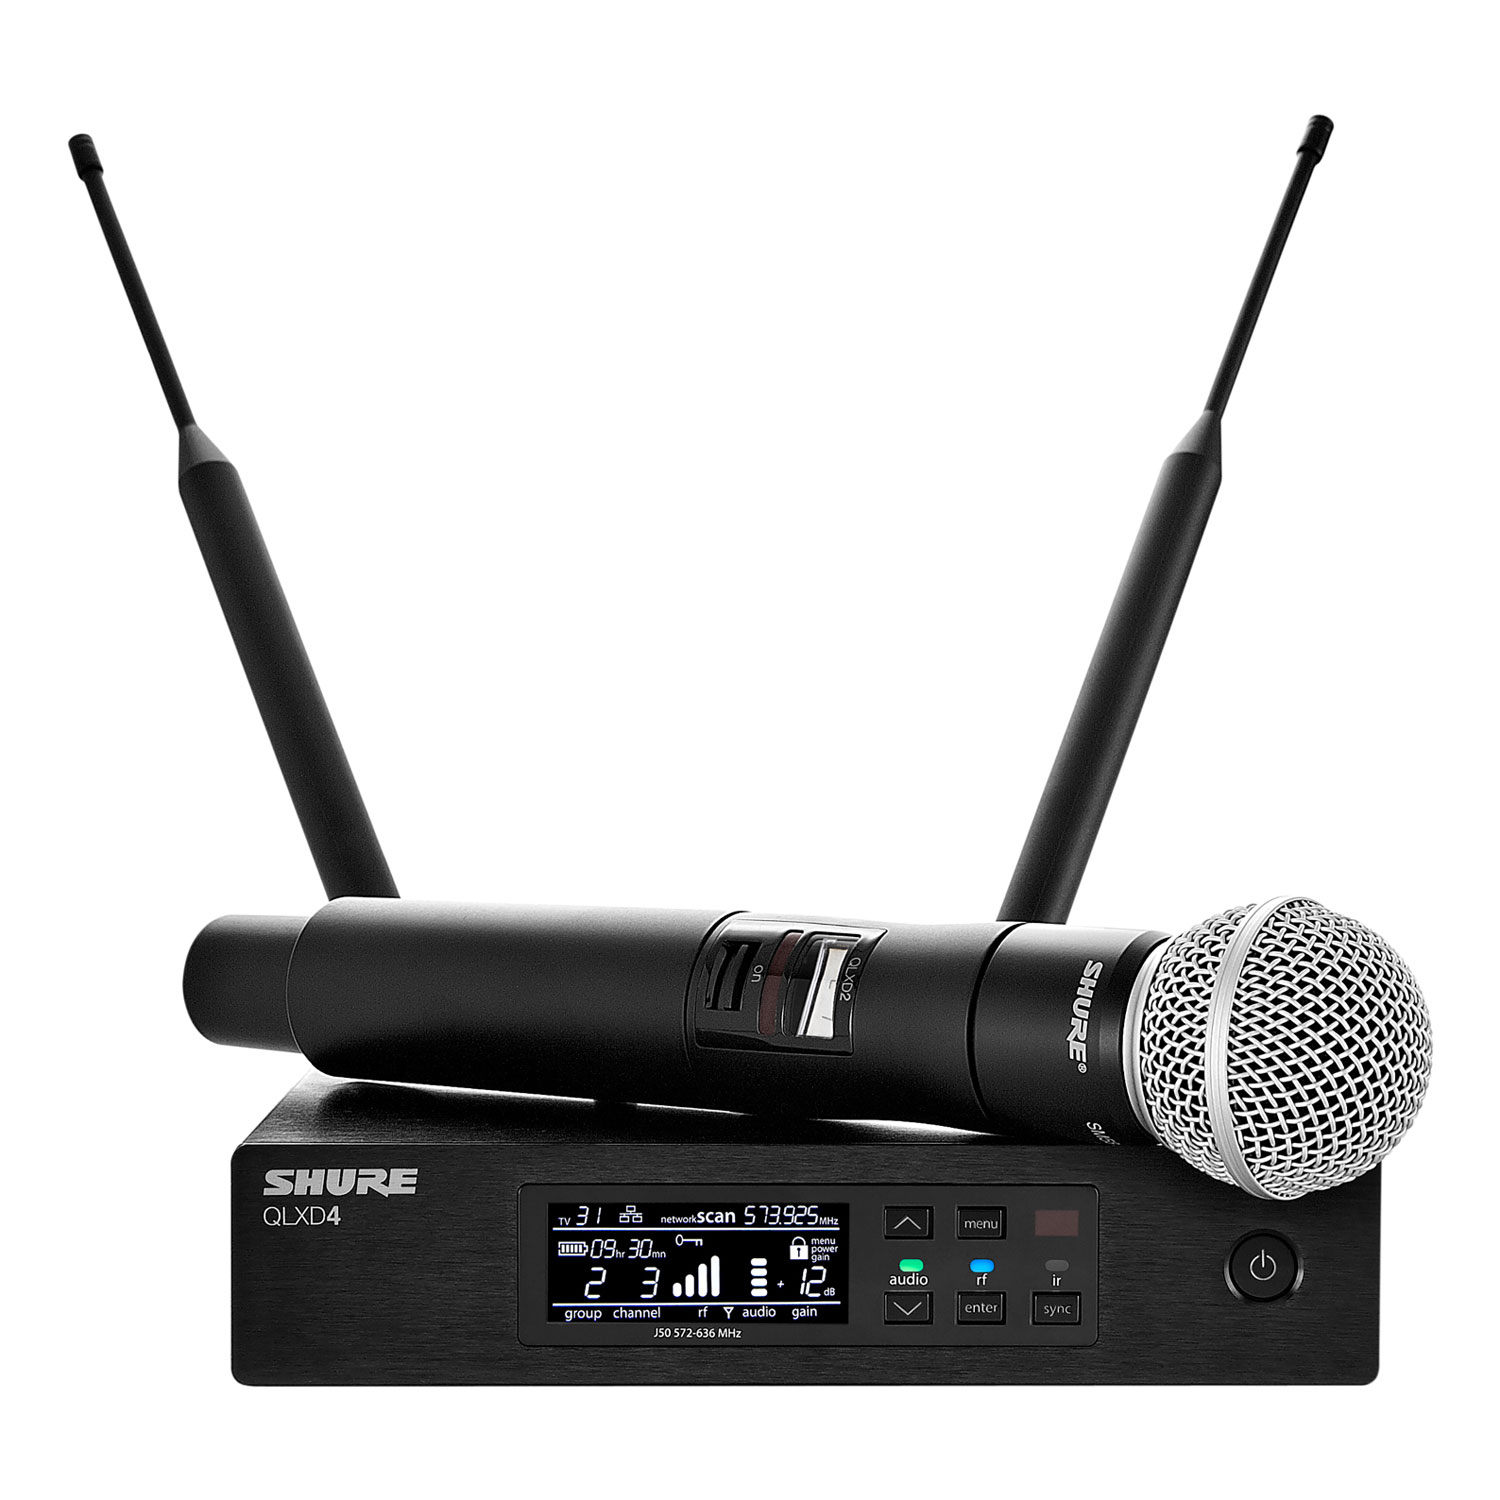 Shure QLX-D Wireless System with SM58 Microphone, QLXD2 Handheld Transmitter, and QLXD4 Receiver